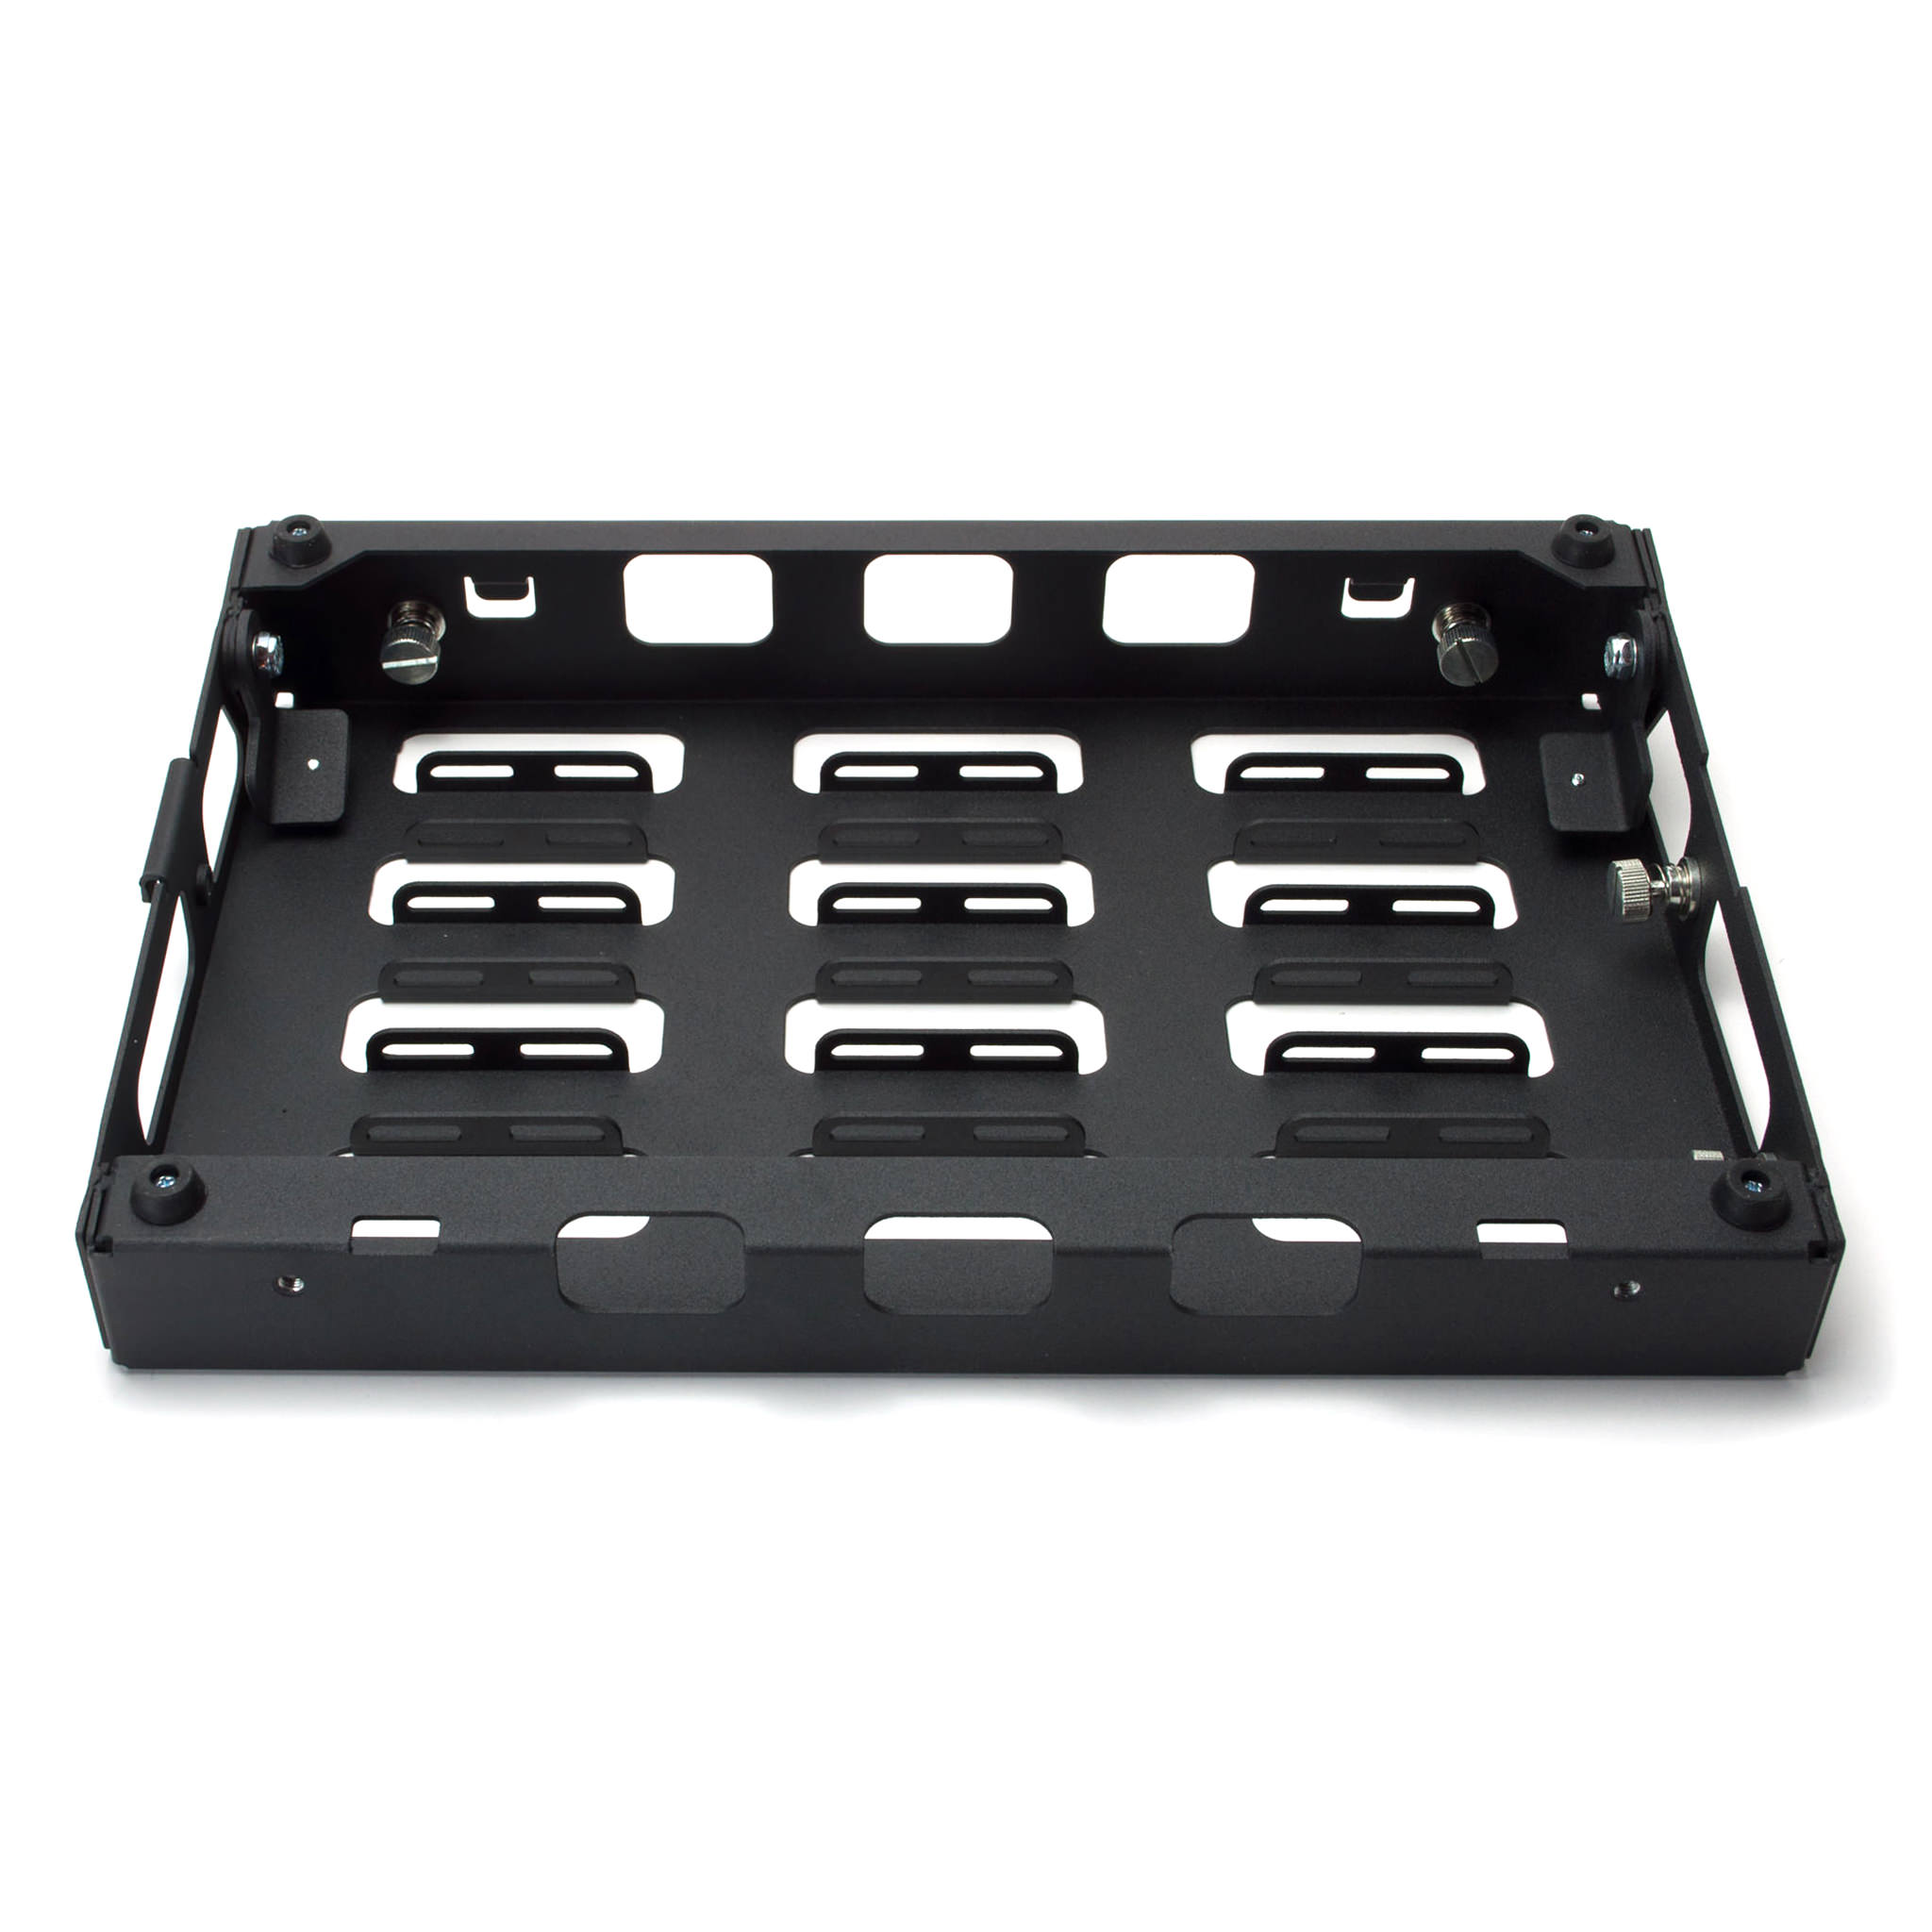 Stompblox modular pedalboard product image - bottom view